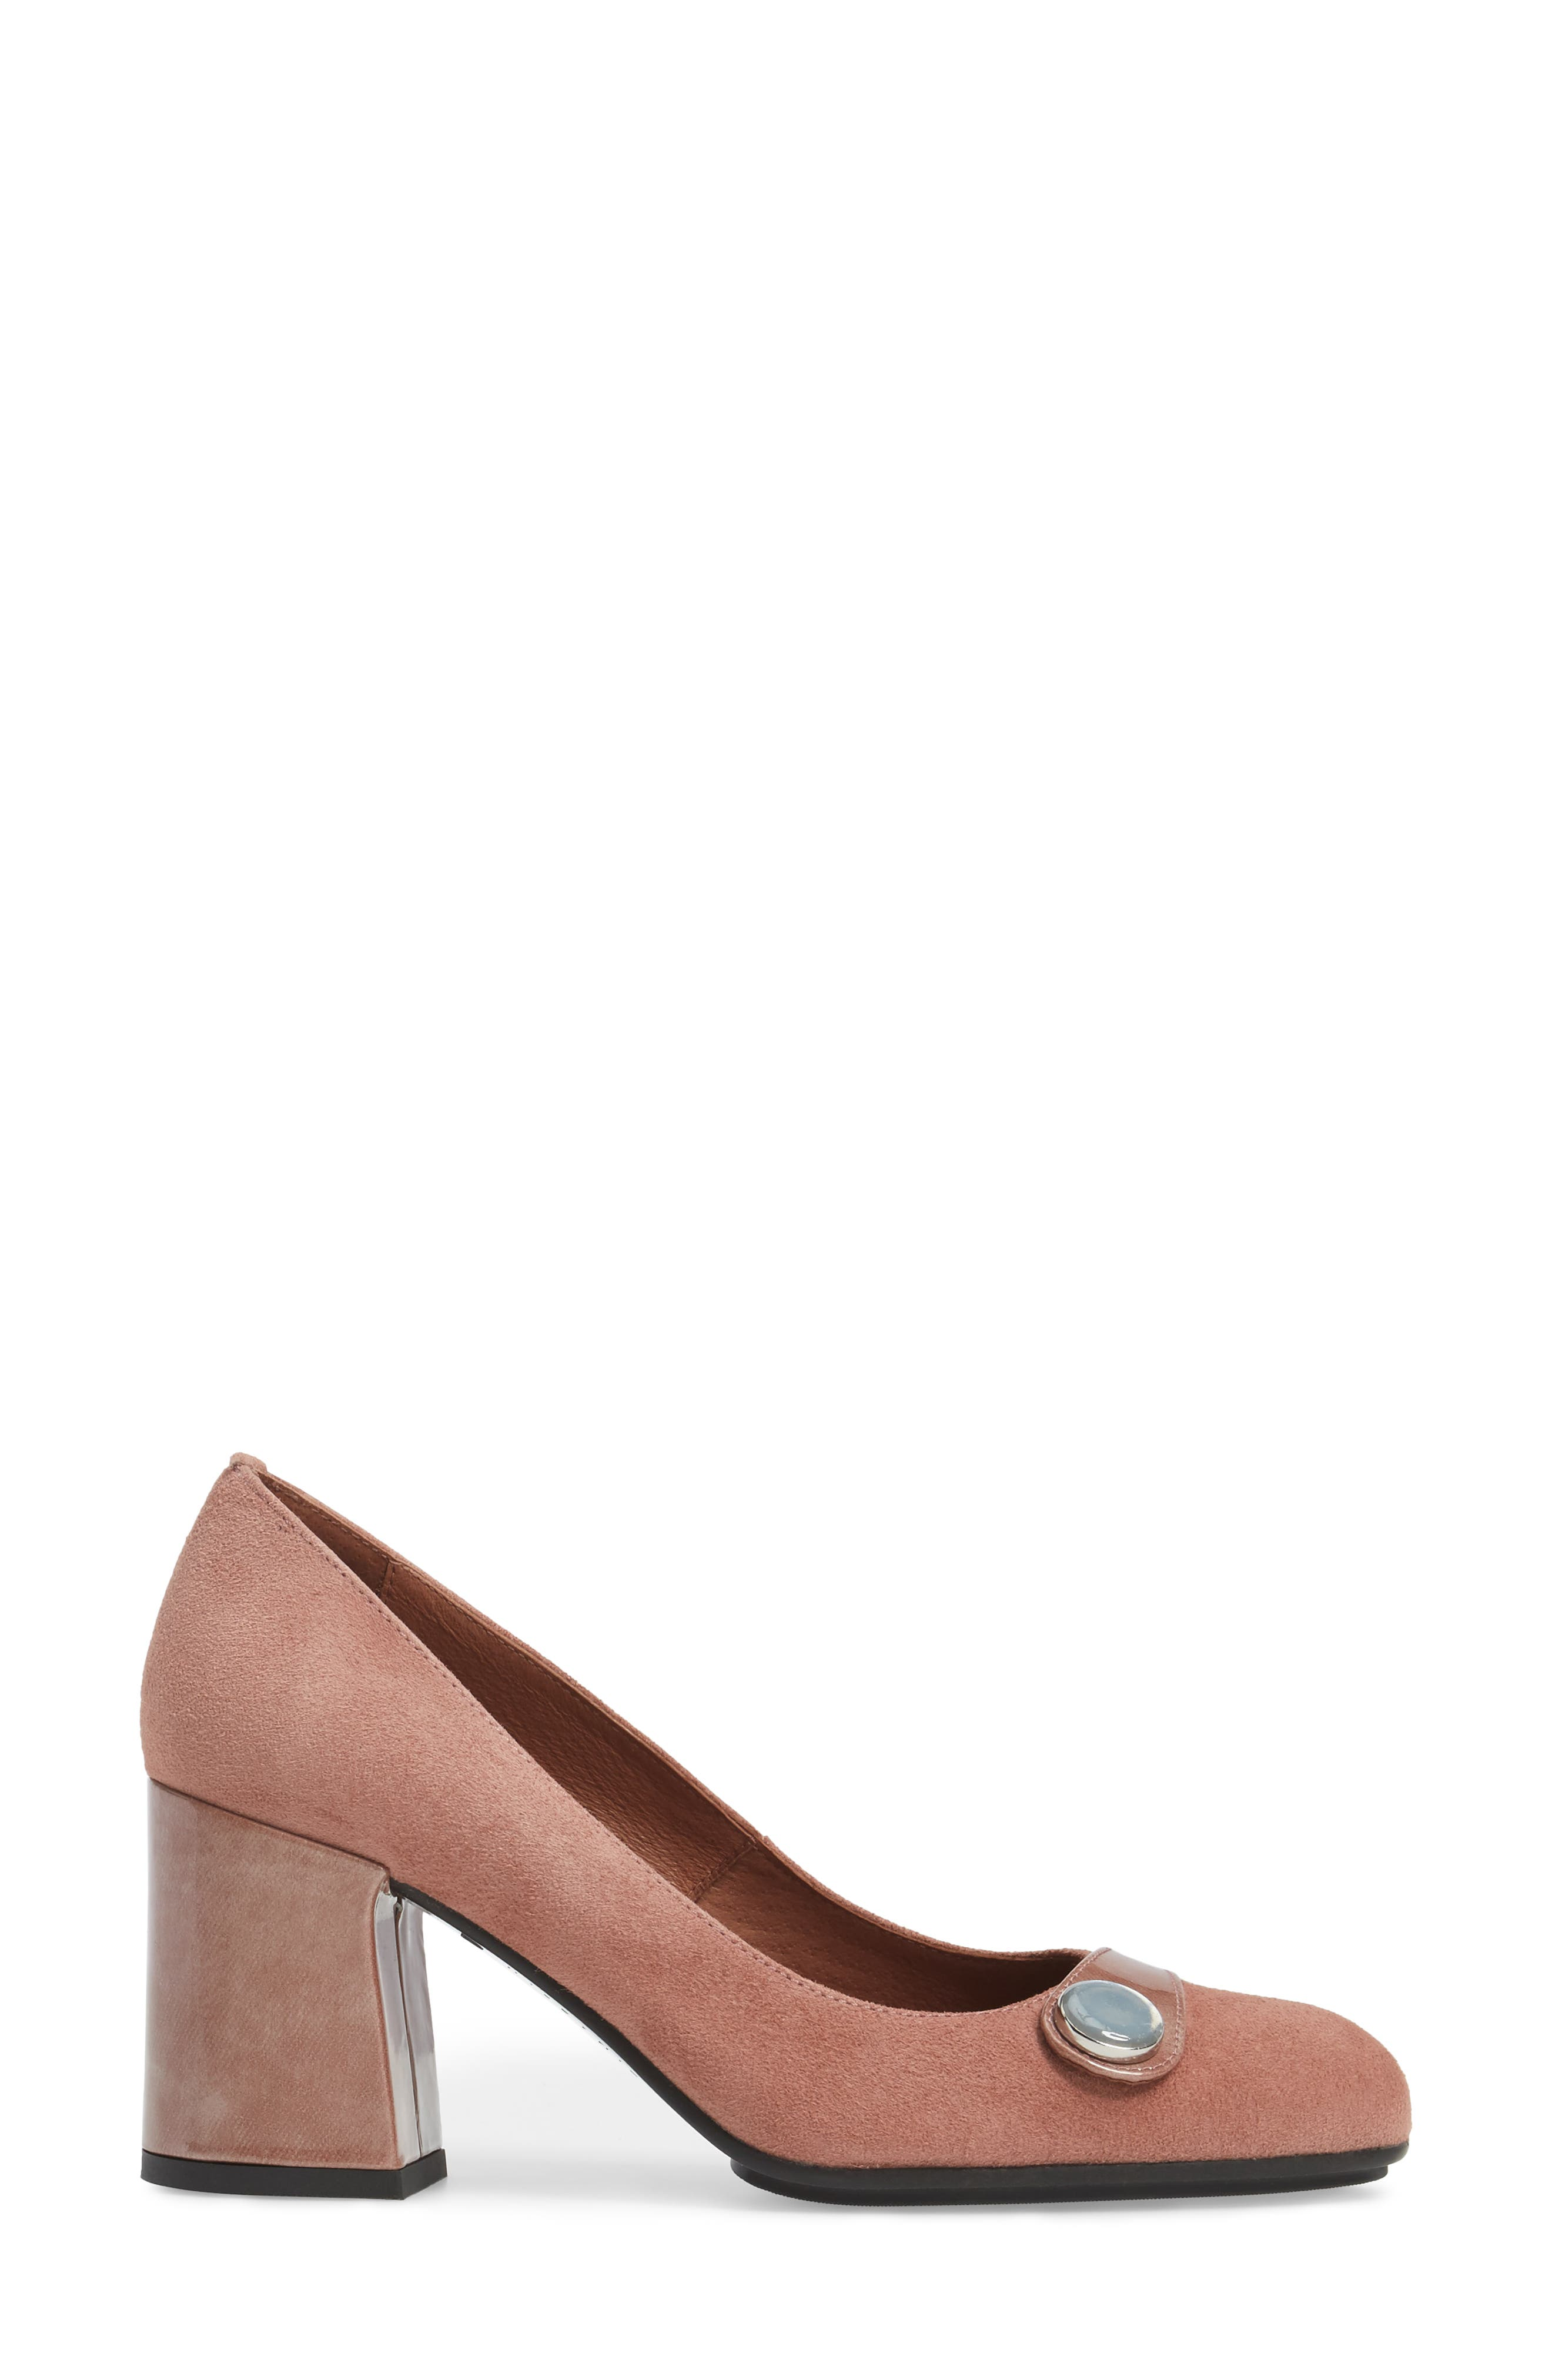 Gretchen Pump,                             Alternate thumbnail 3, color,                             Rose Leather